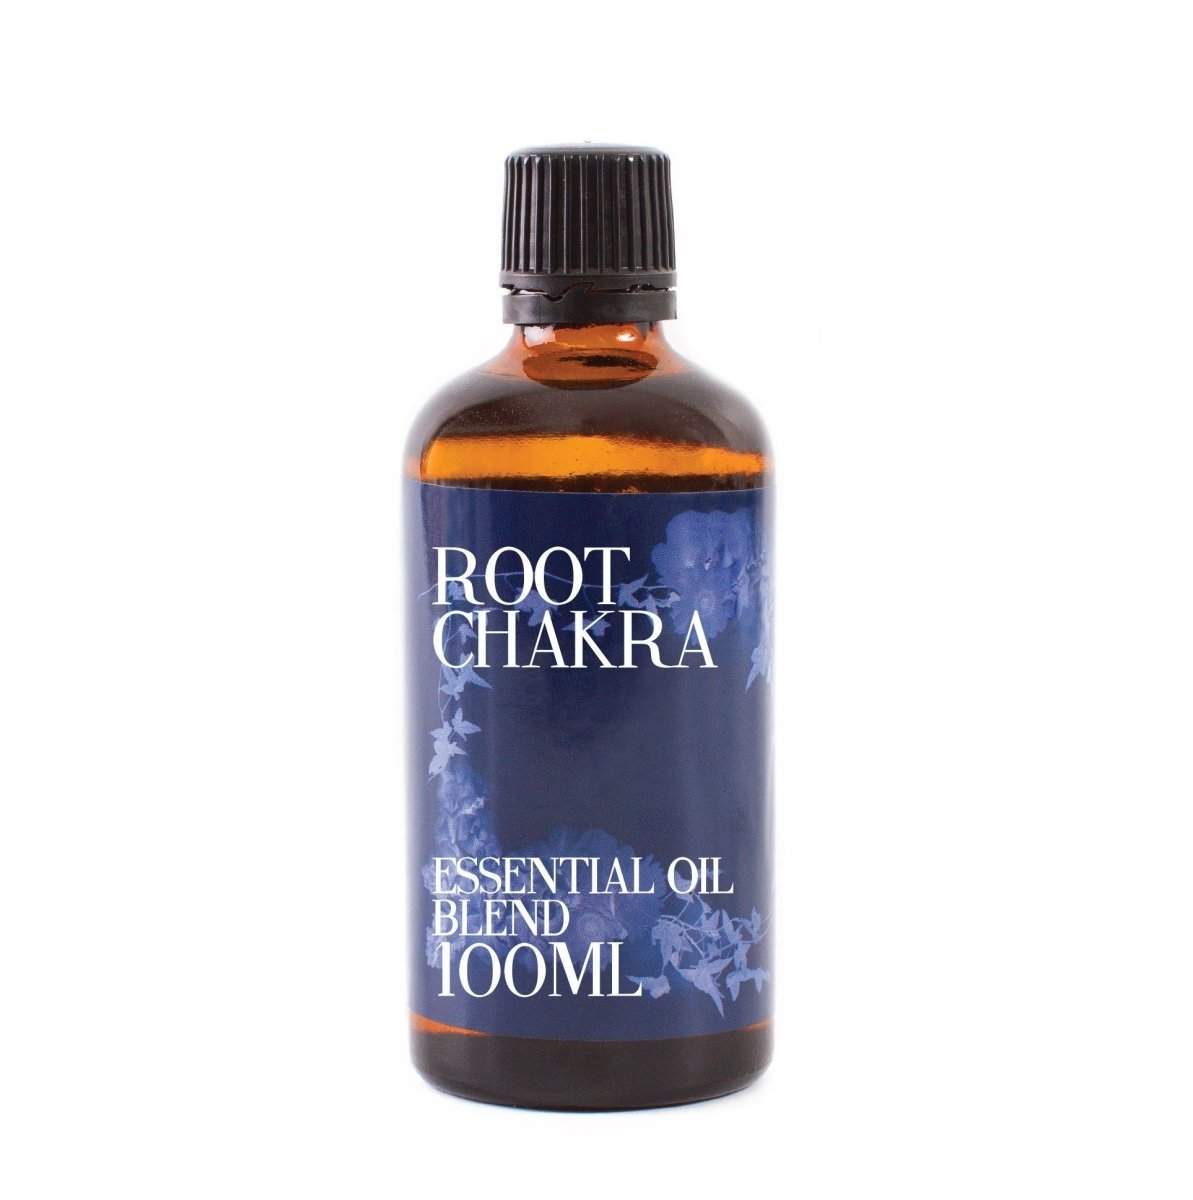 Root Chakra | Essential Oil Blend - Mystic Moments UK